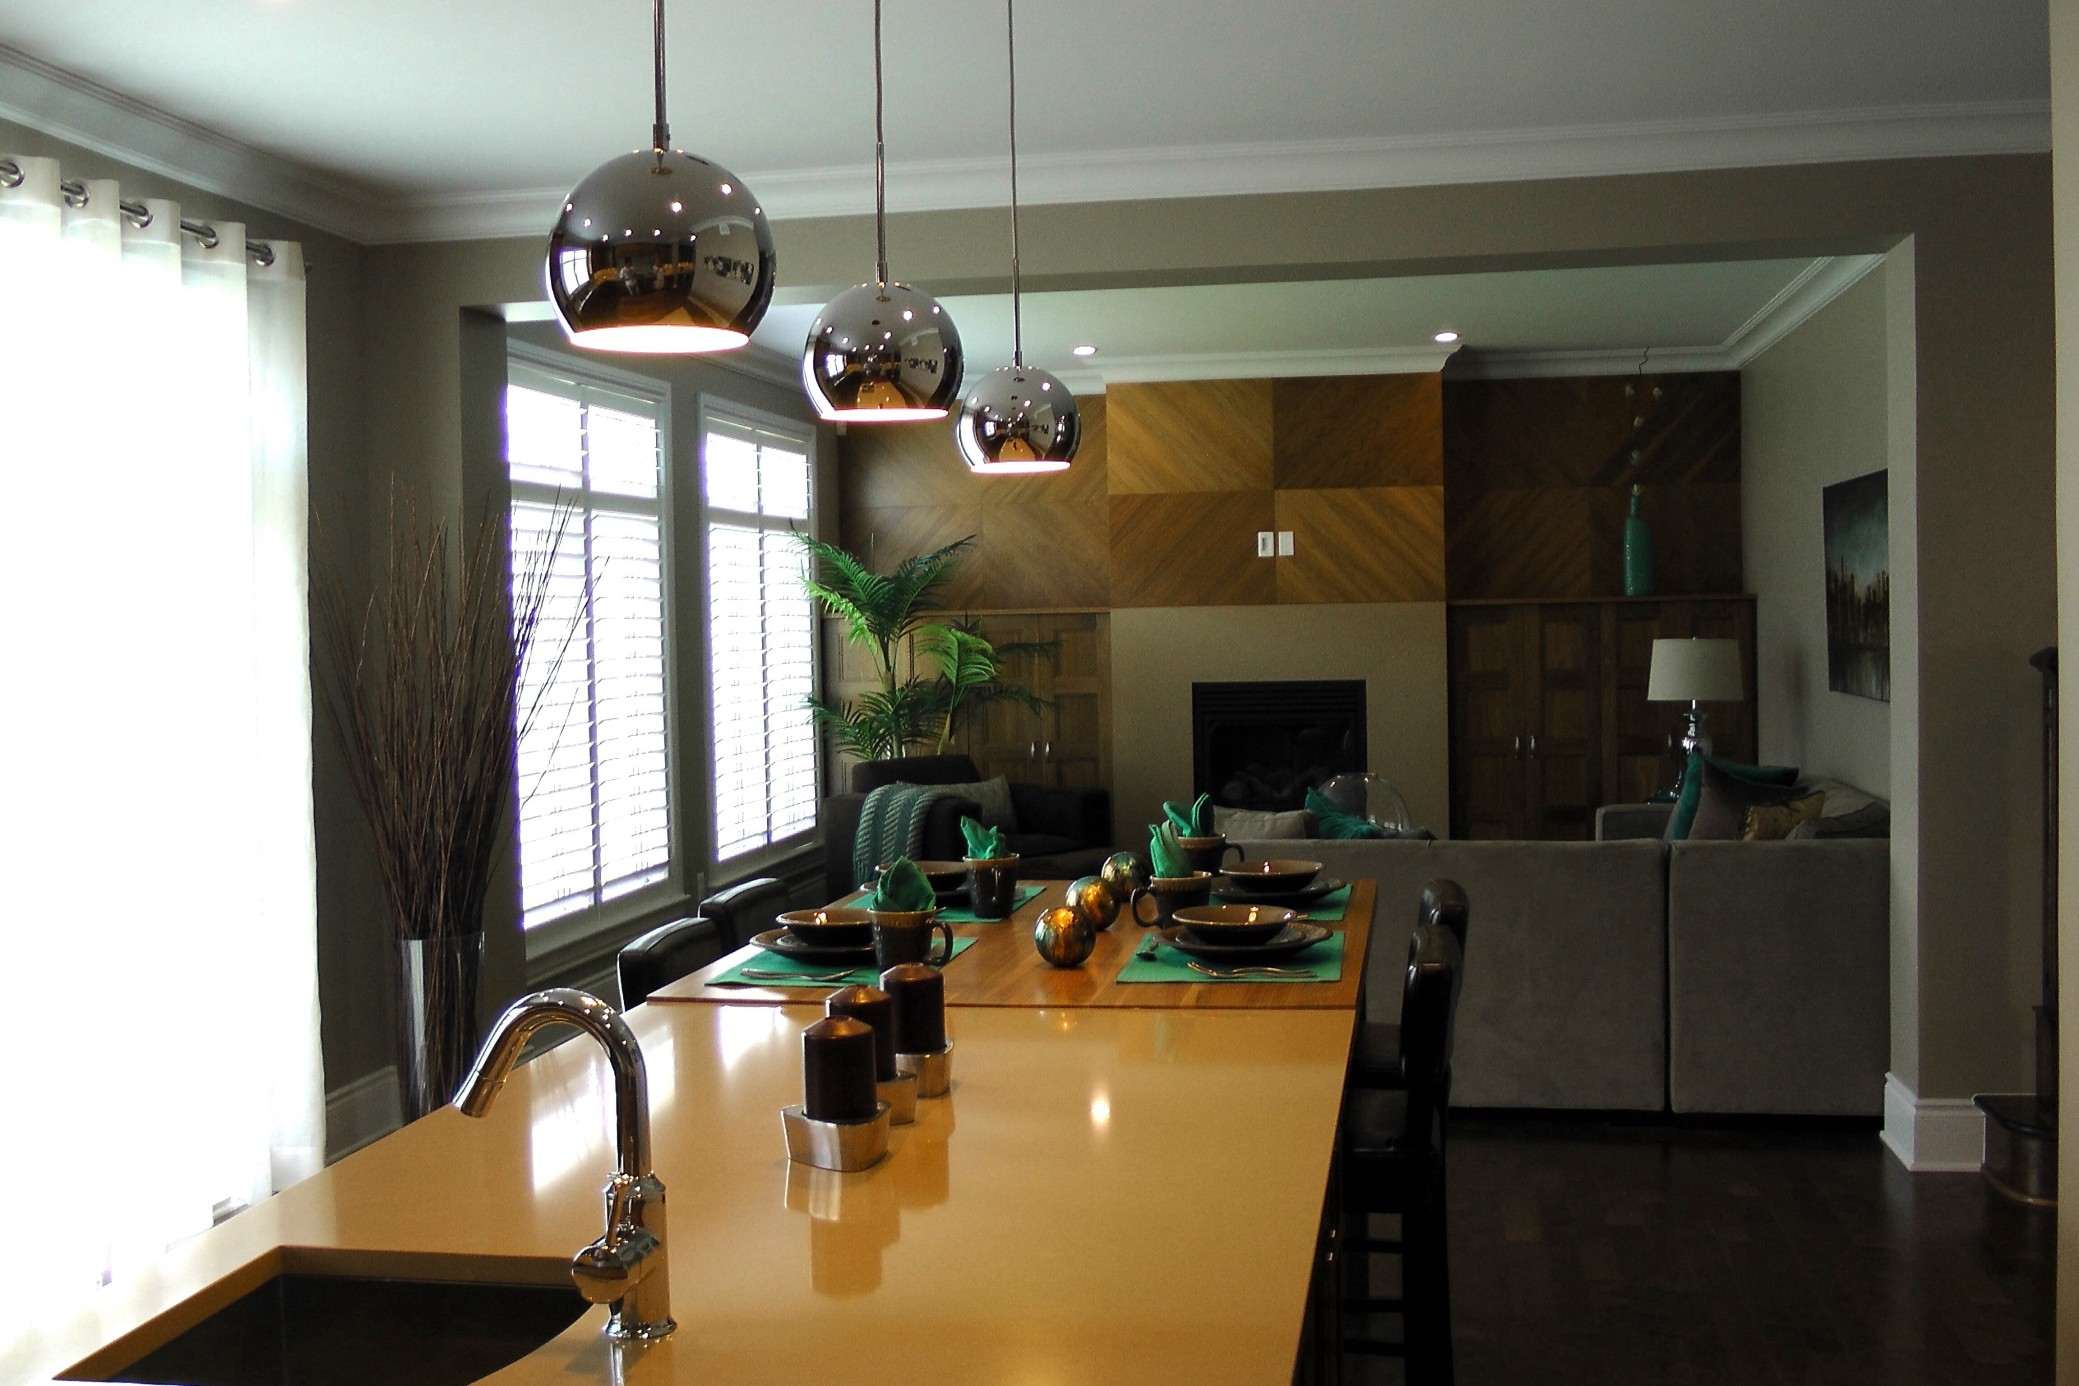 Looking to Remodel Your Kitchen, While Saving Money at the Same Time